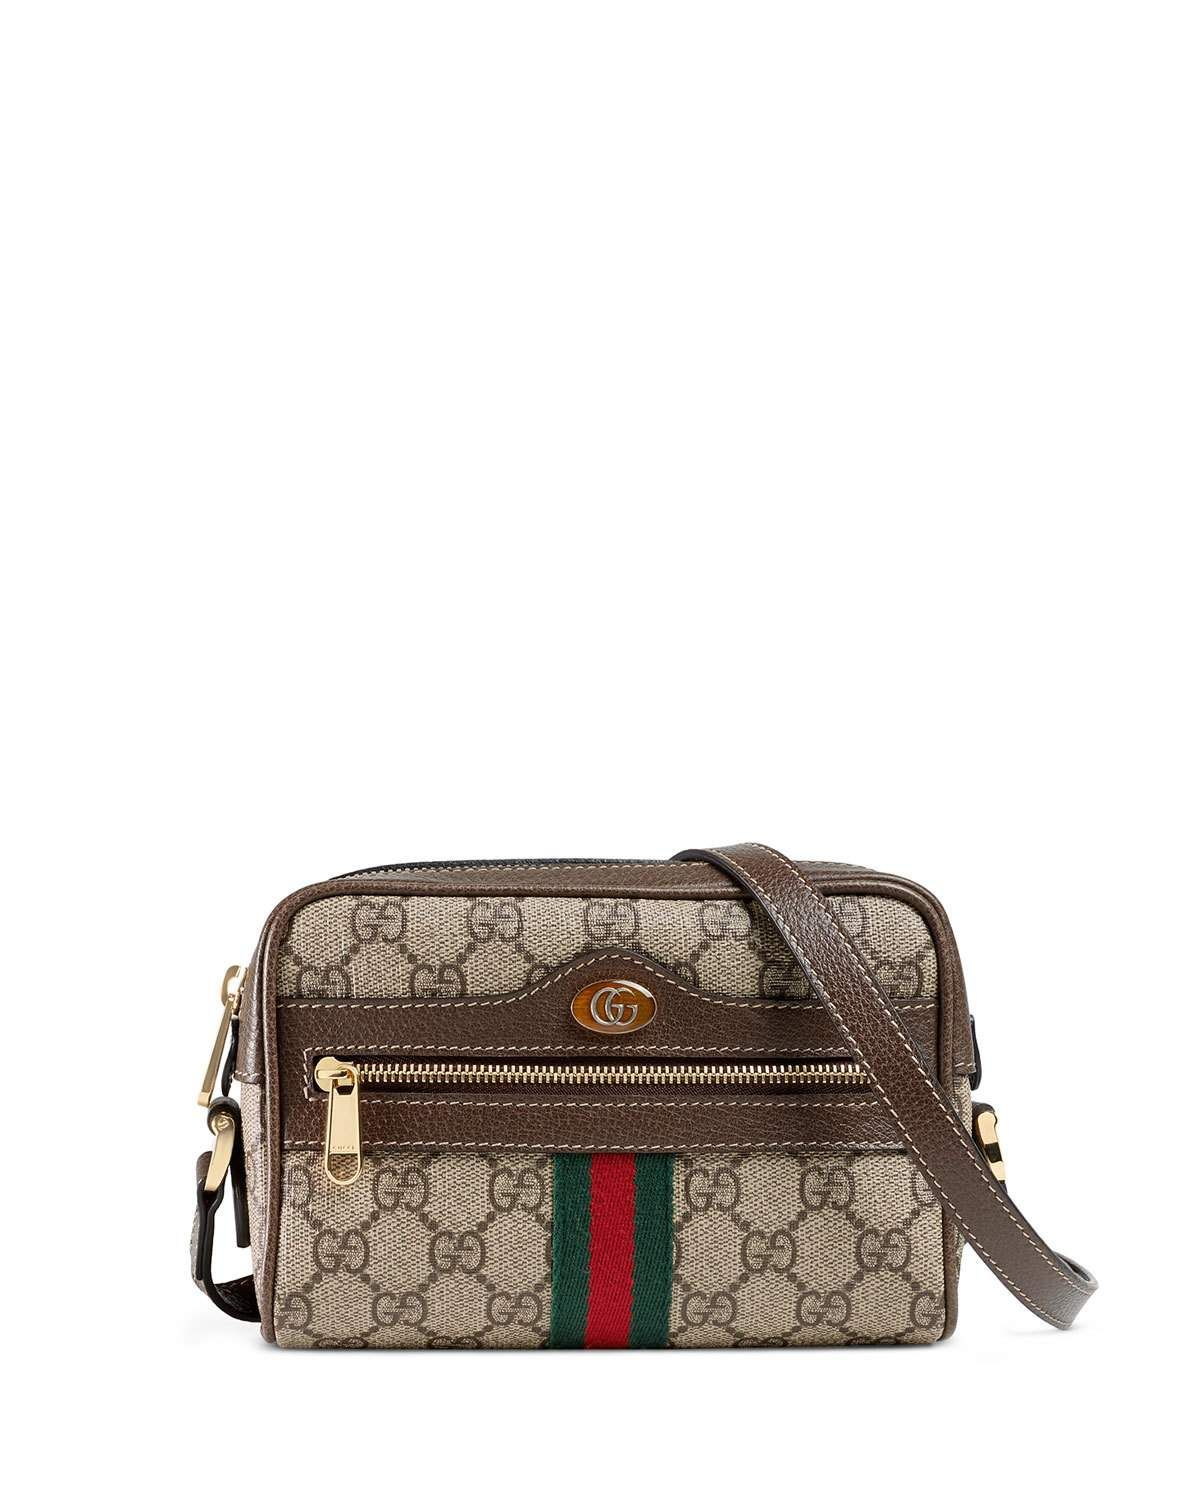 75ec337d003 Gucci Ophidia Small GG Supreme Crossbody Bag